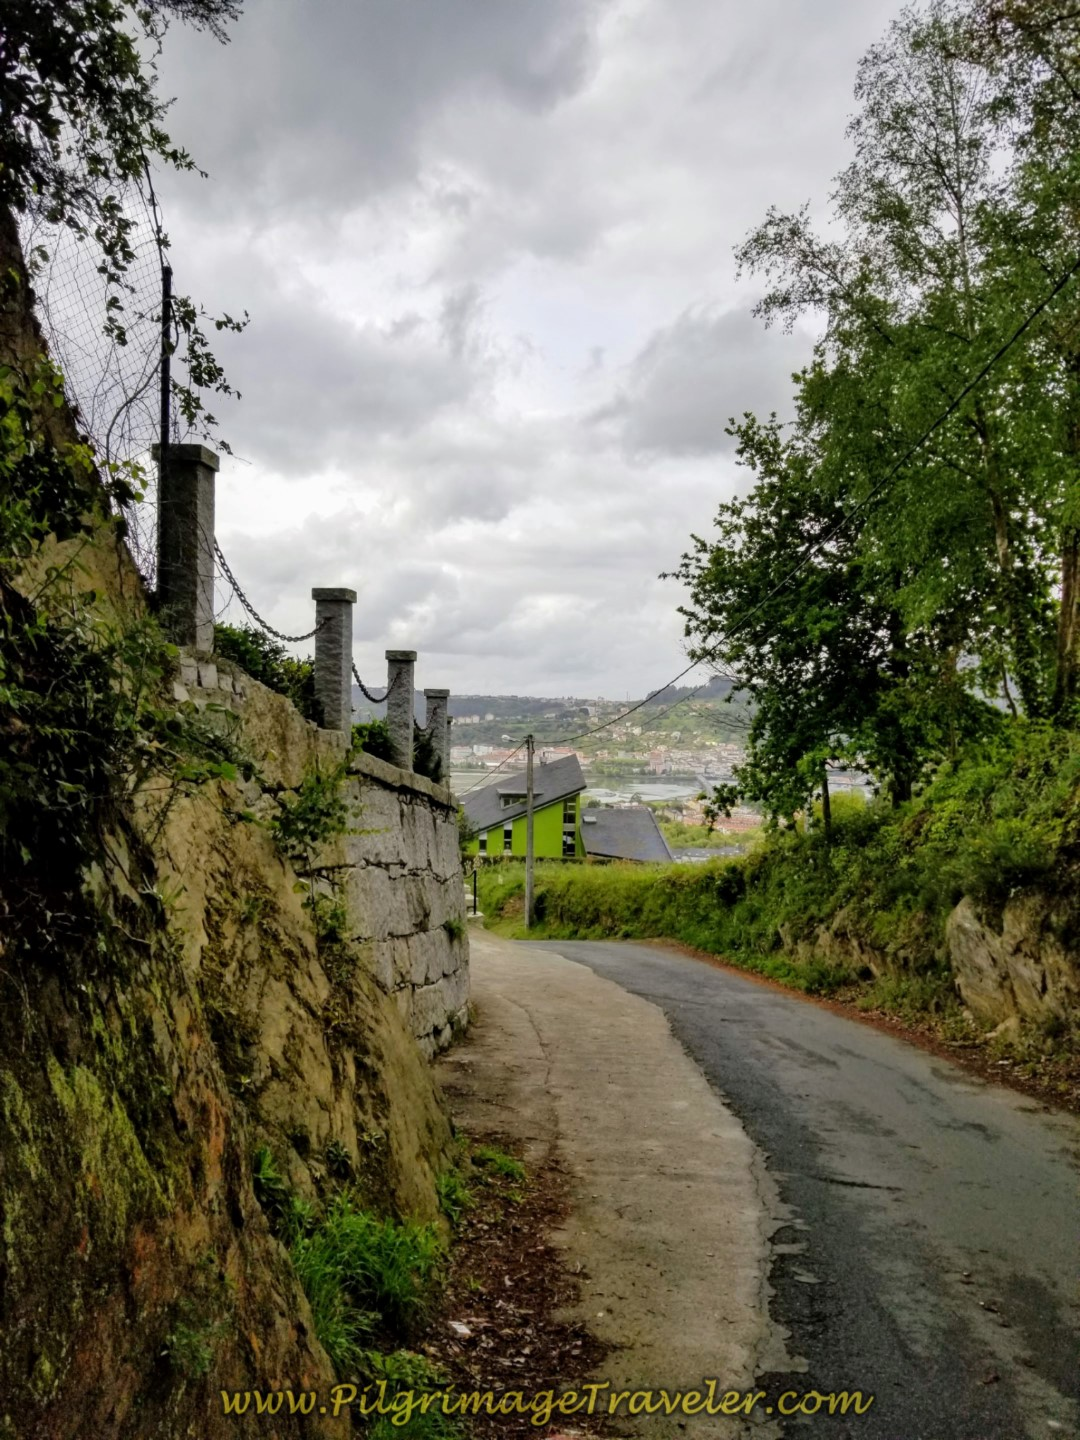 Continue on the Camiño do Cadivas on day two of the English Way